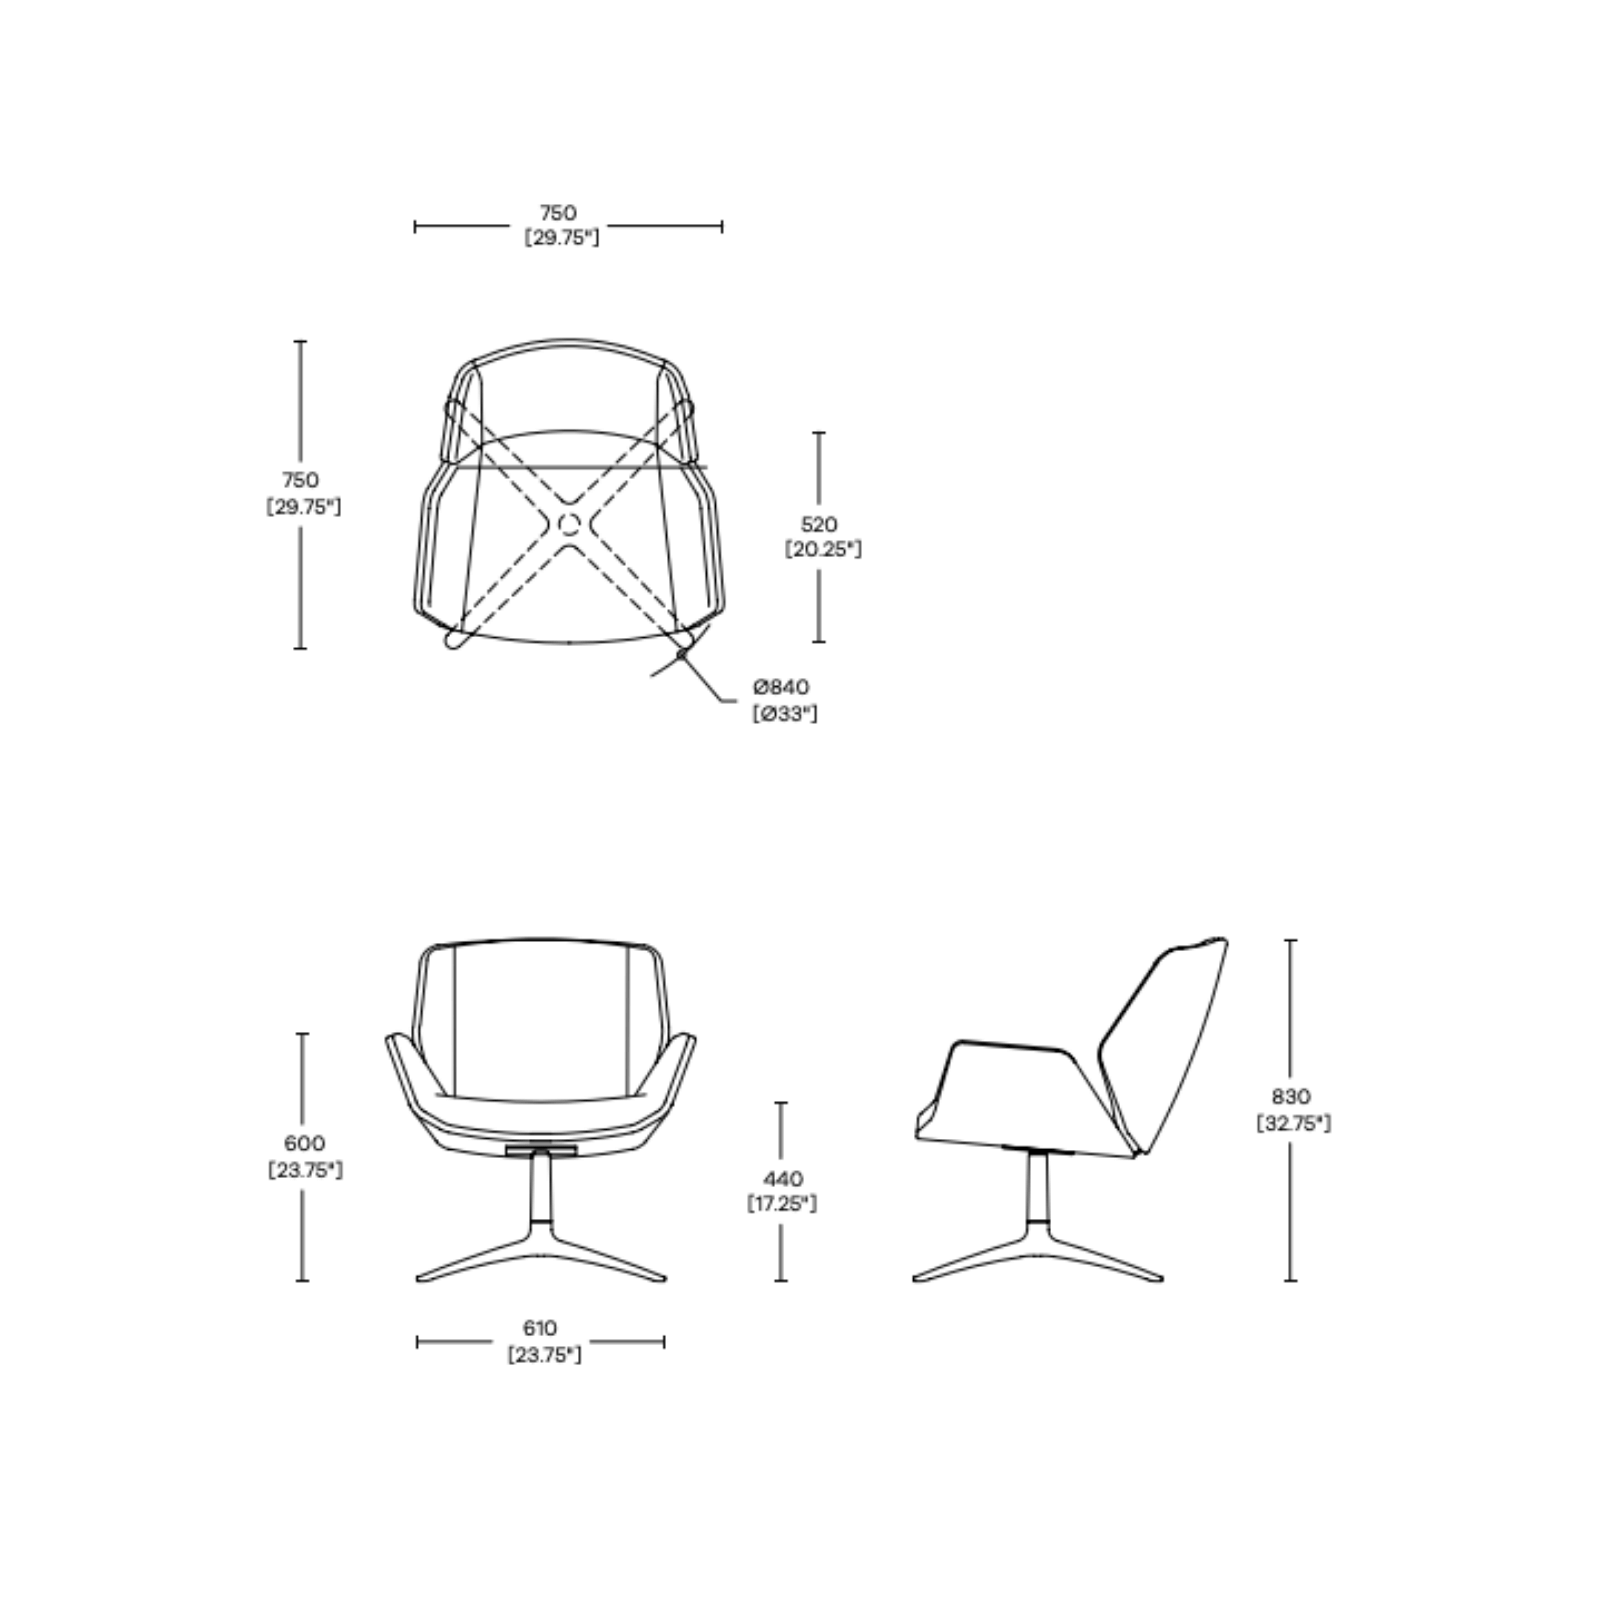 Boss Design Kruze Office chair specs